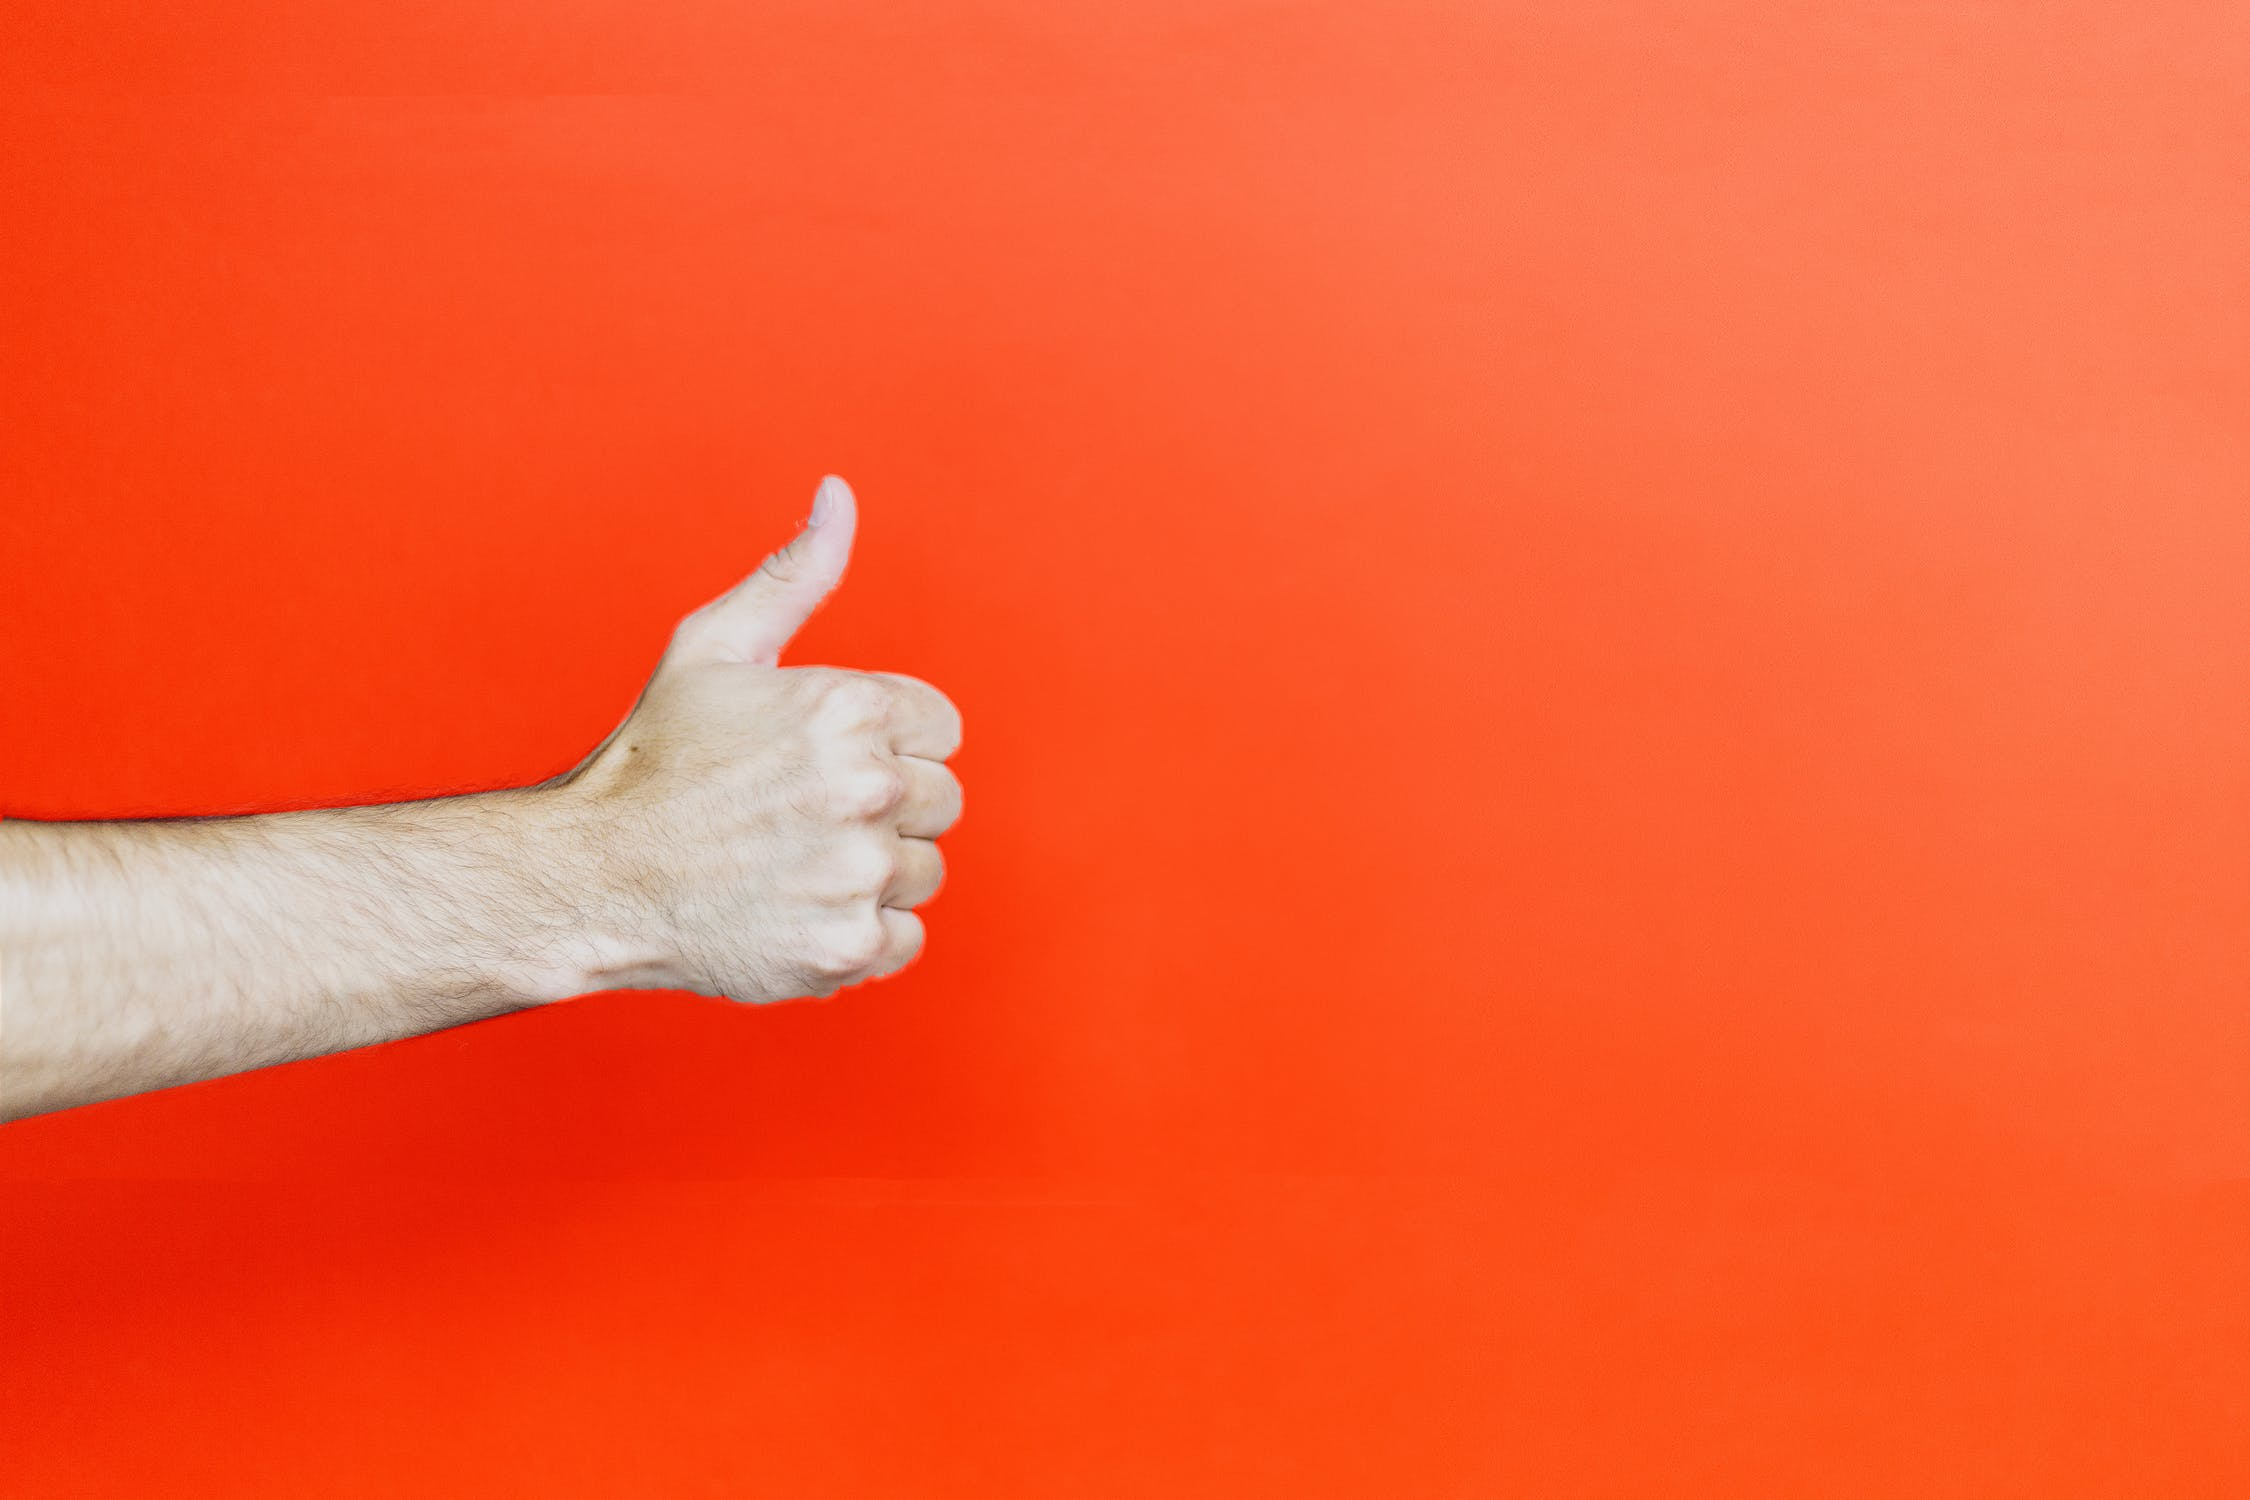 A person giving a thumbs up in front of a red background. Photo by pexels user Oleg Magni. Photo used courtesy of pexels.com